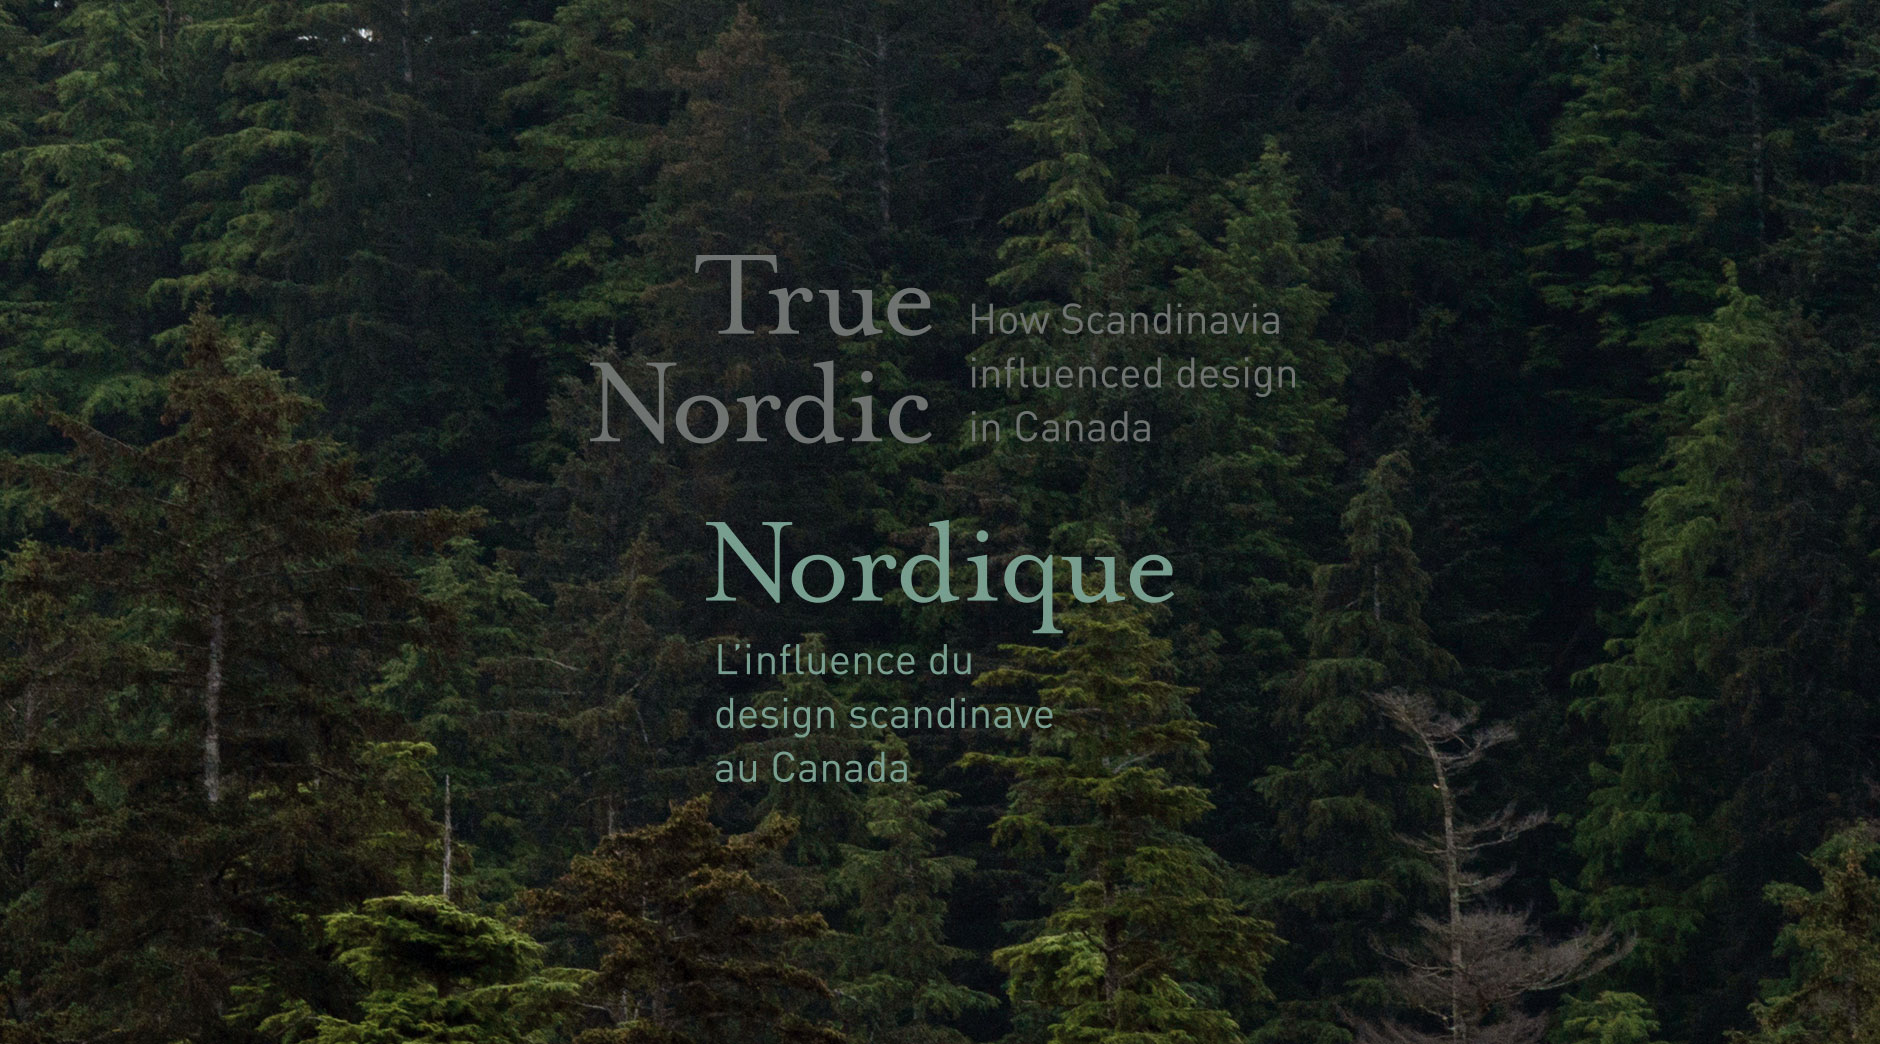 True Nordic exhibit logo